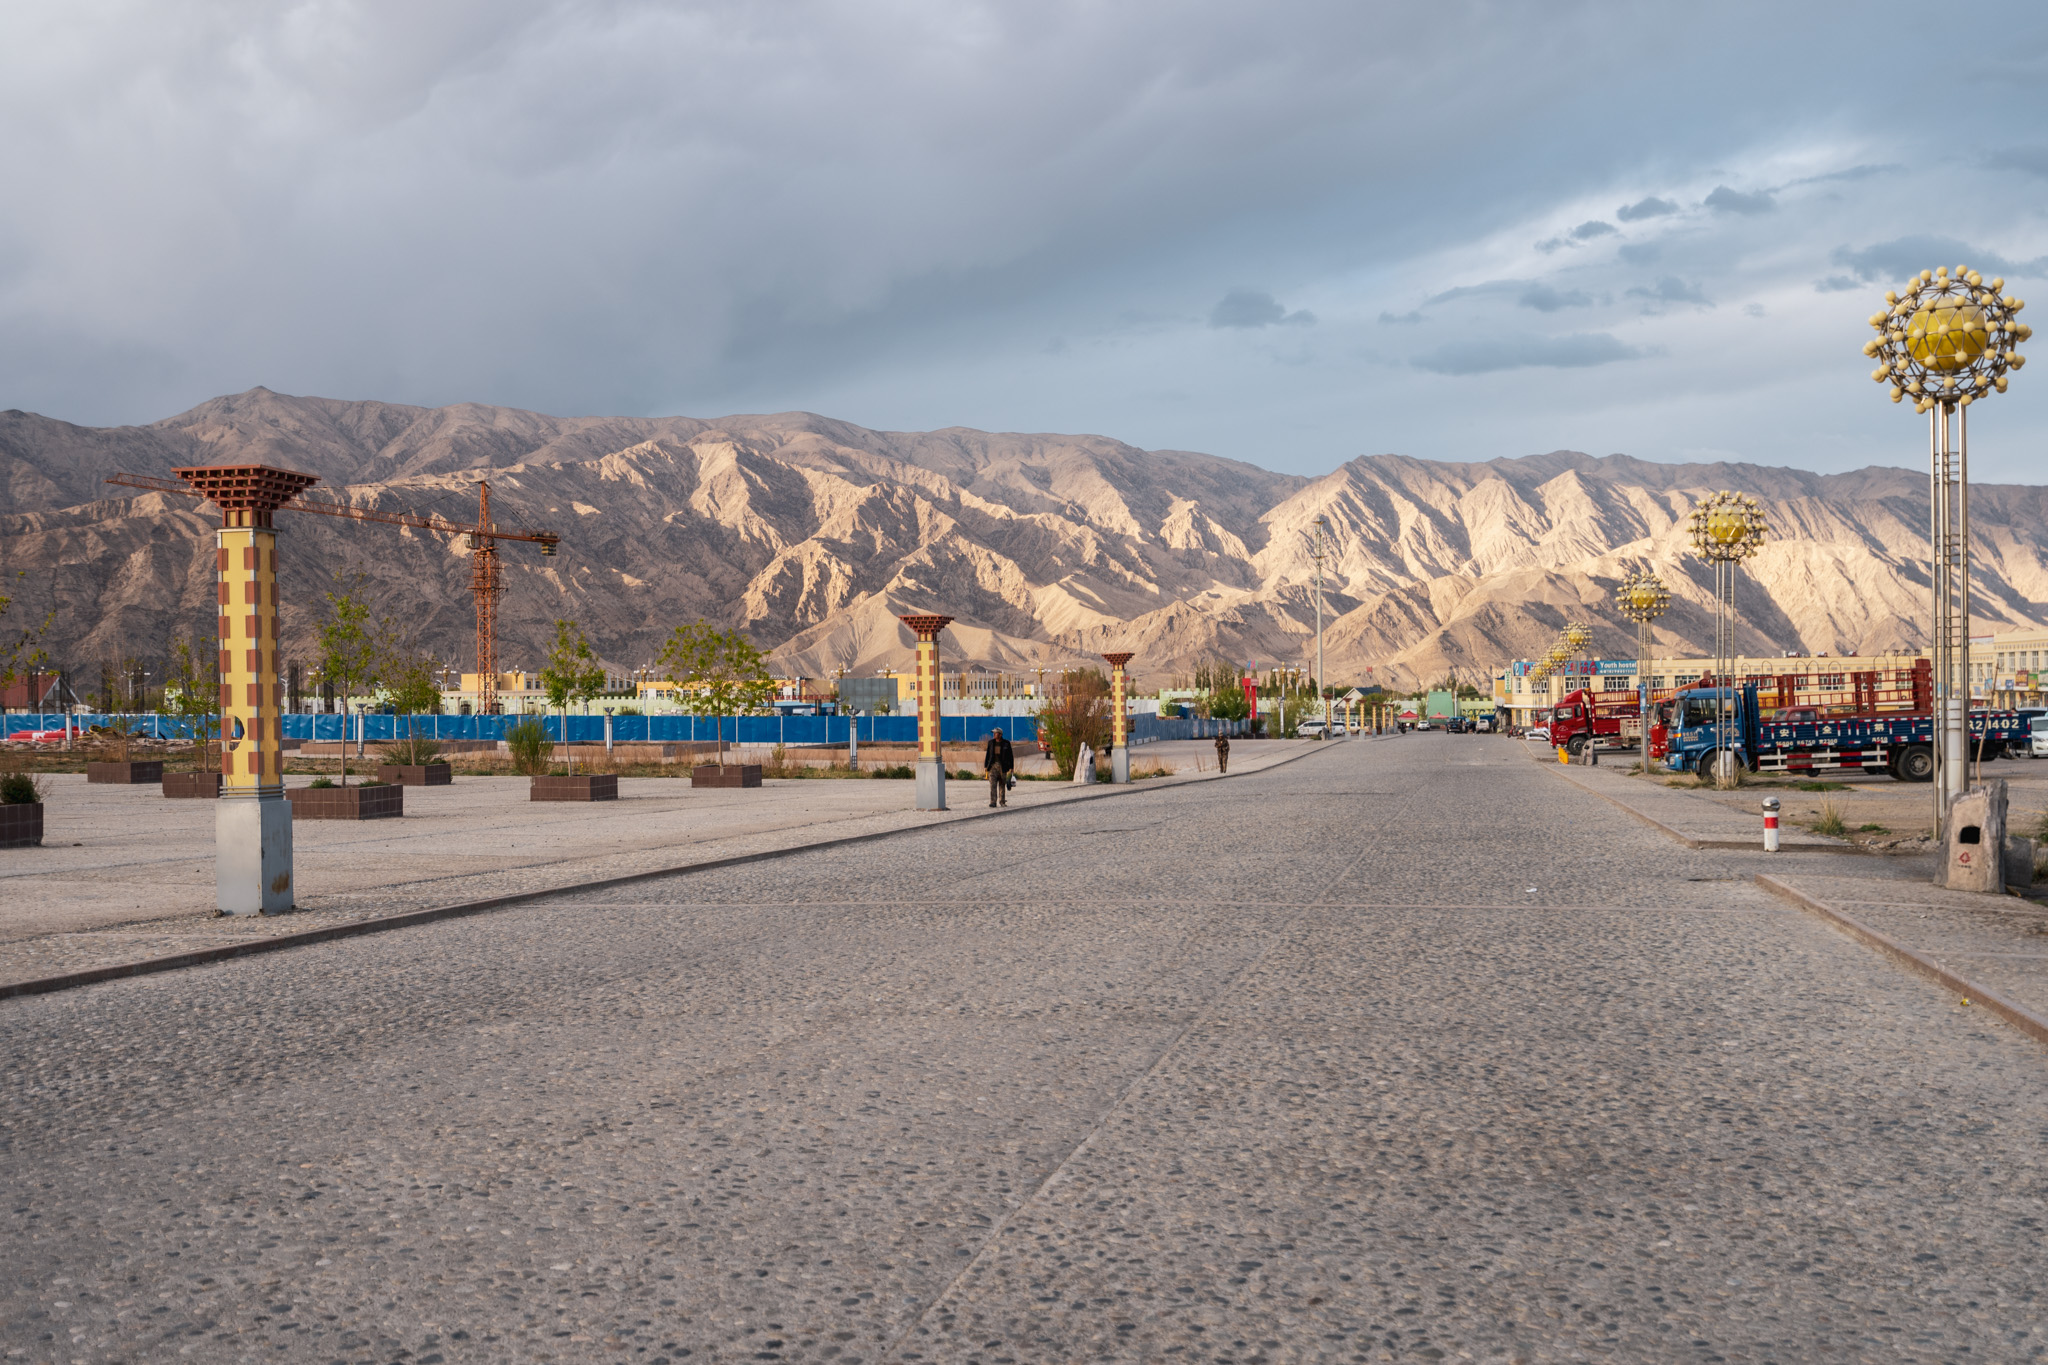 Strangely empty streets in Tashkurgan, China